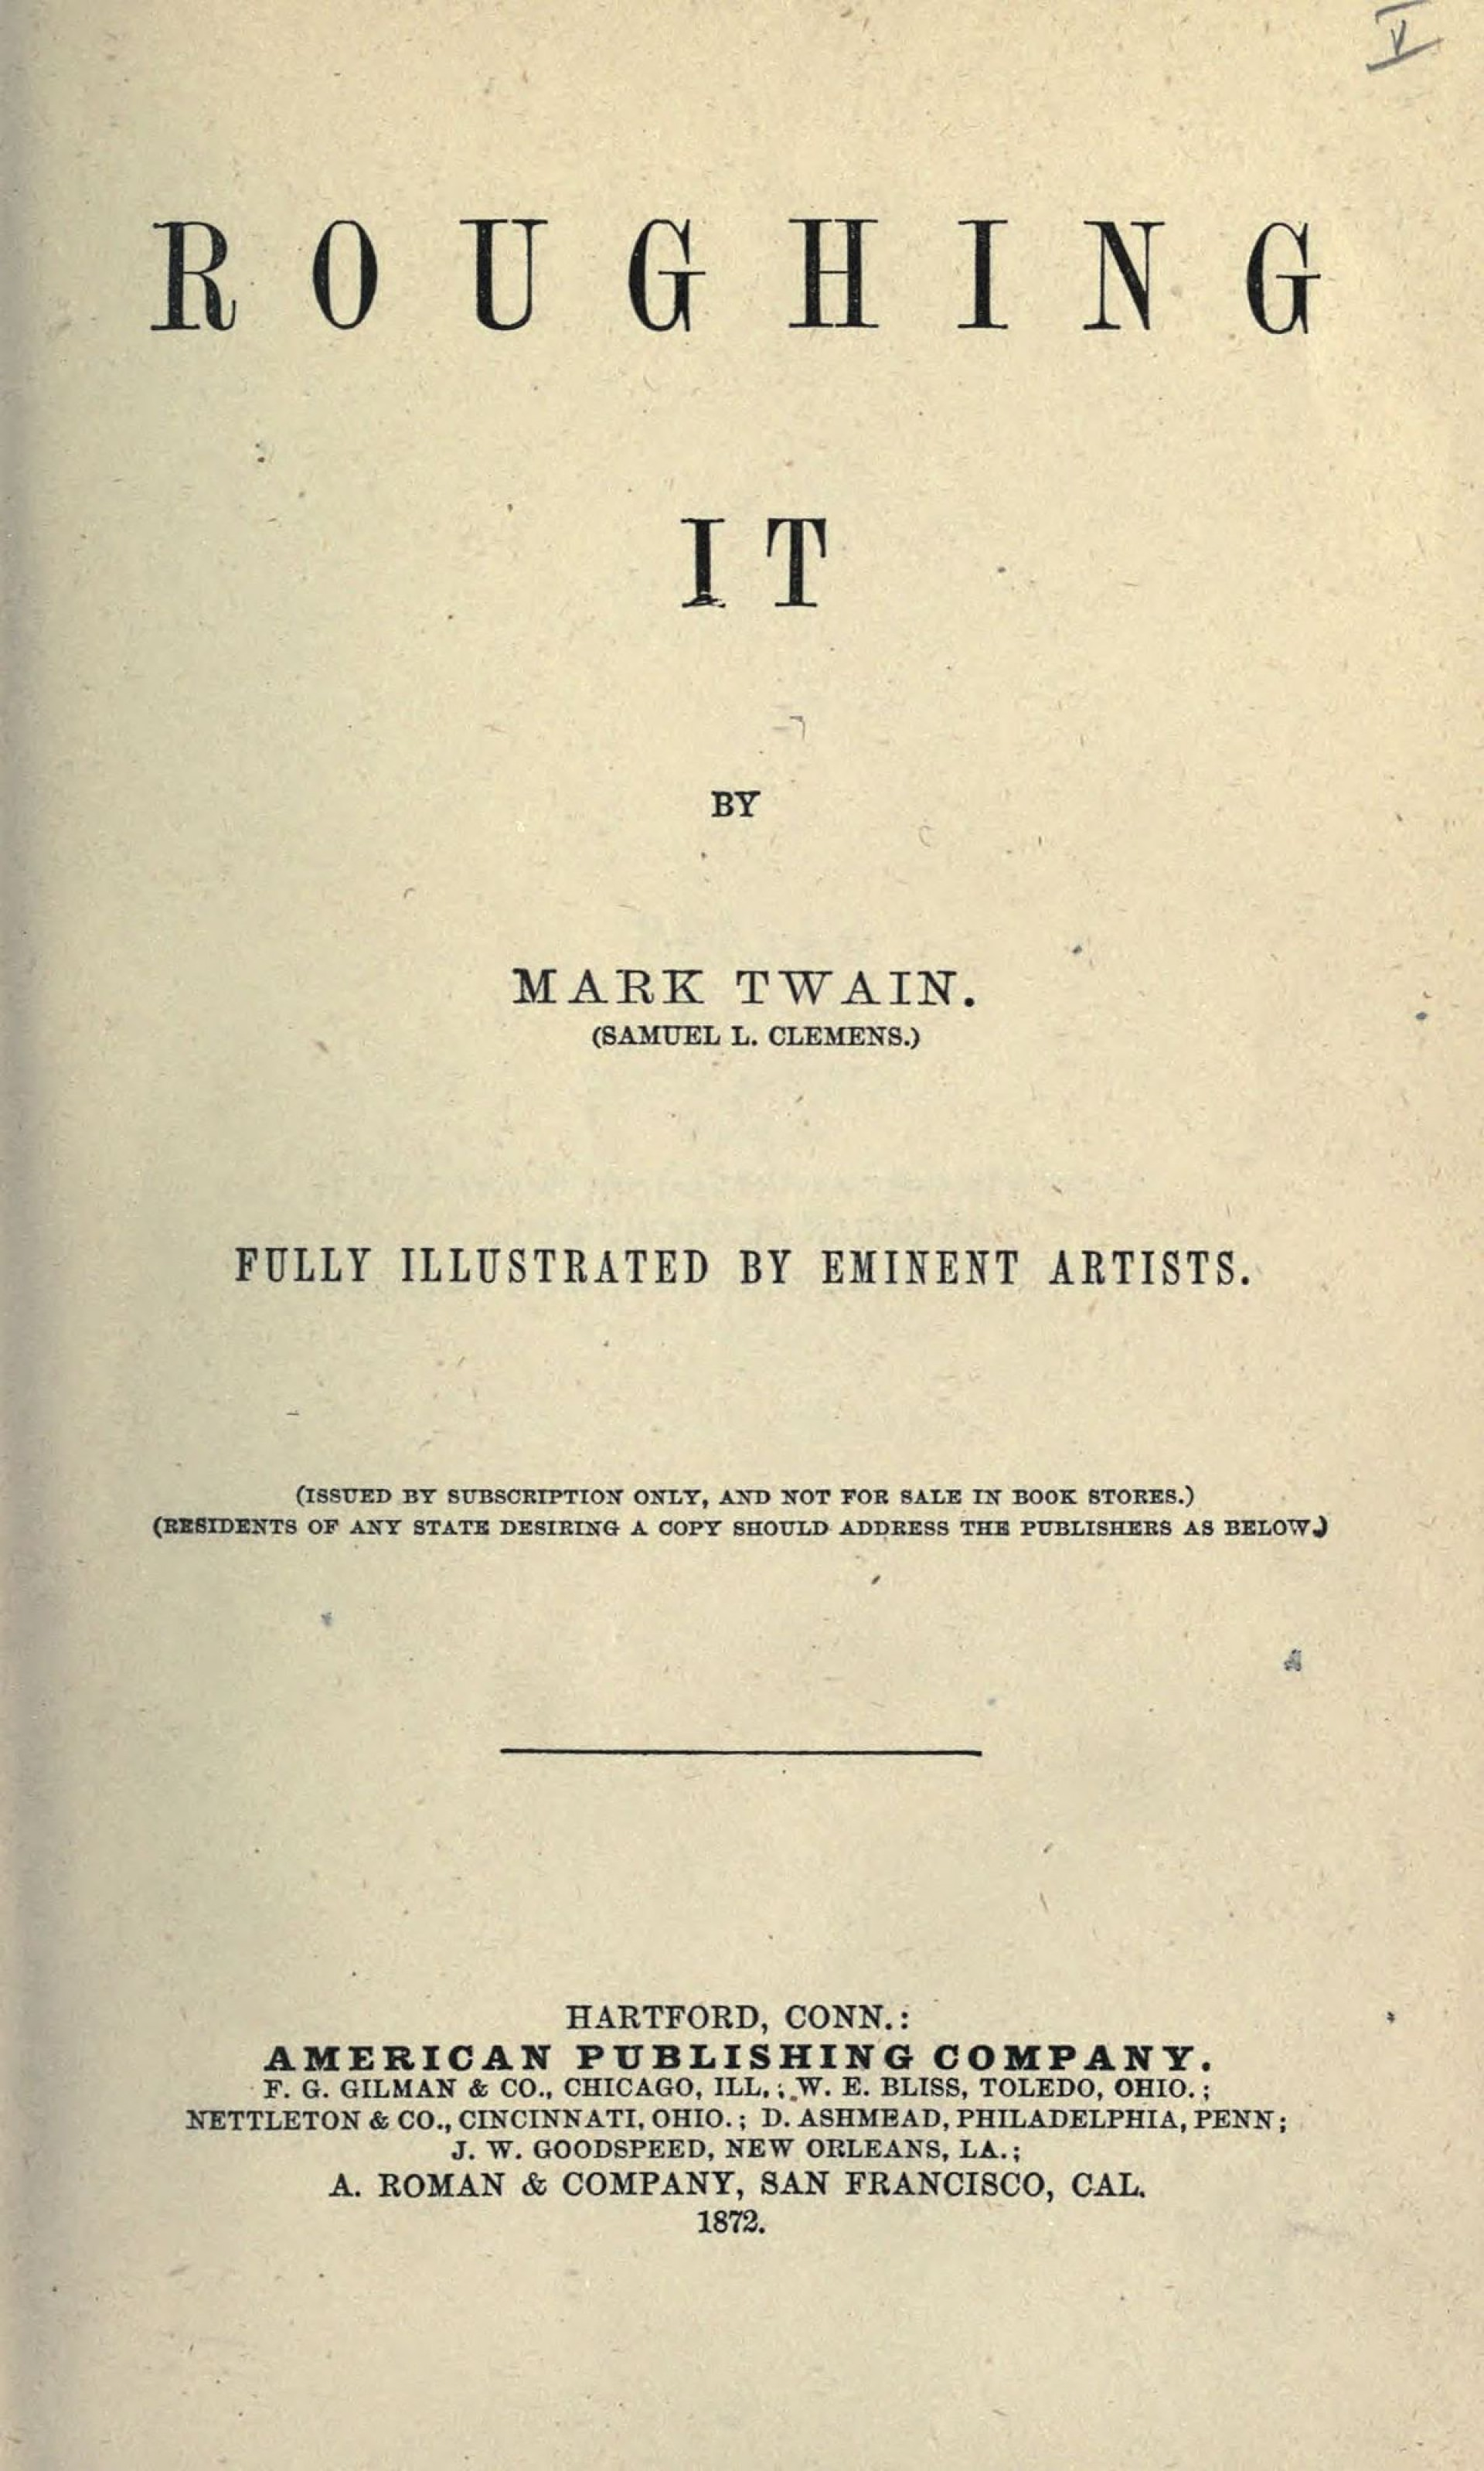 003 1200px Roughing It2c P  001 Essay Example Mark Twain Surprising Essays Pdf On Writing Nonfiction1920